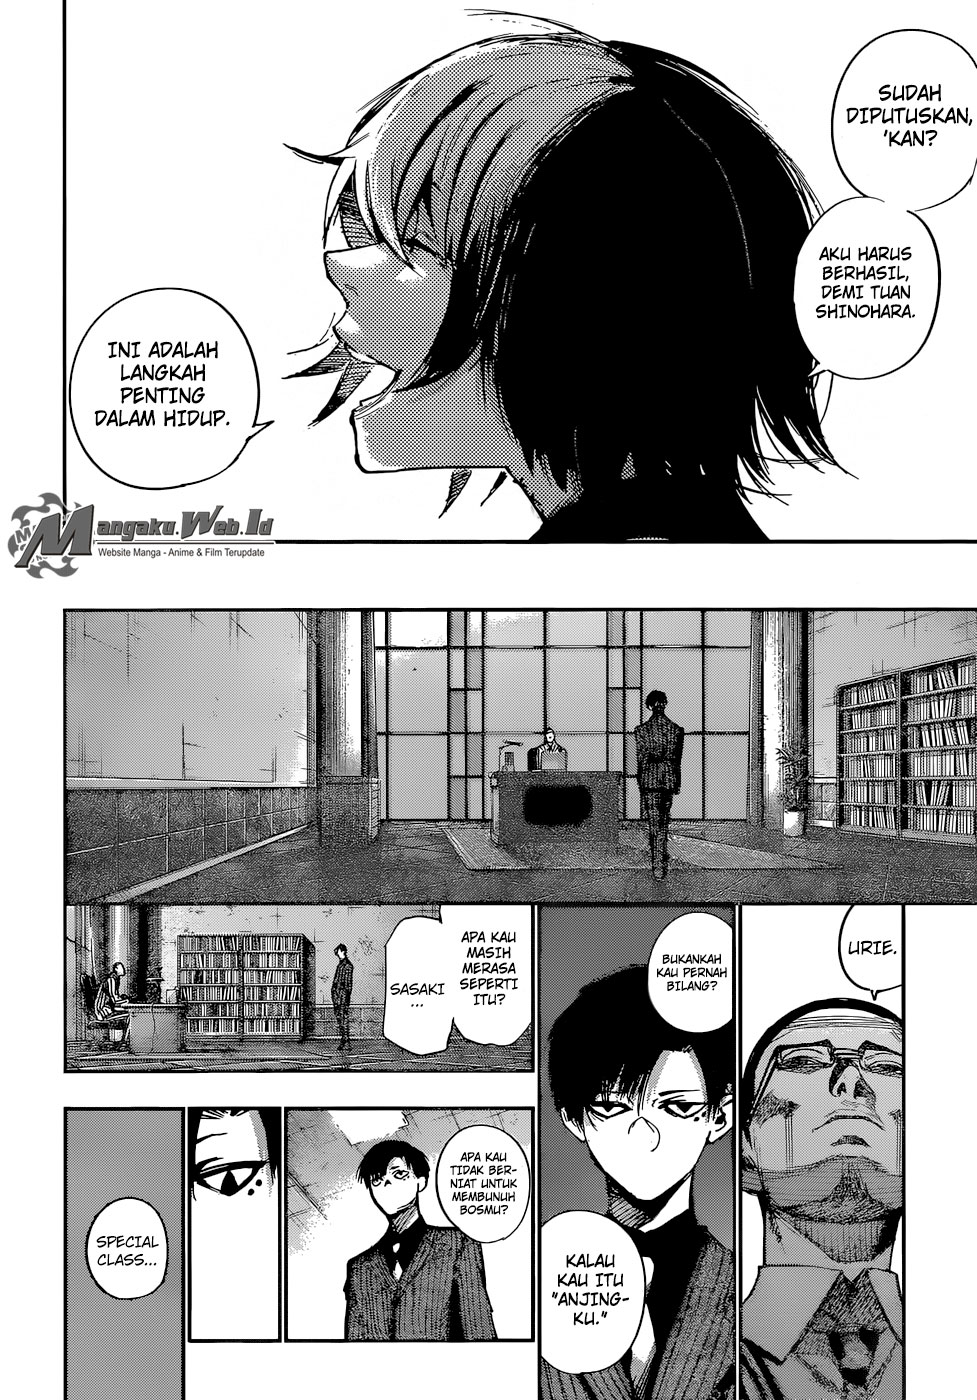 Tokyo Ghoul:re Chapter 100-11